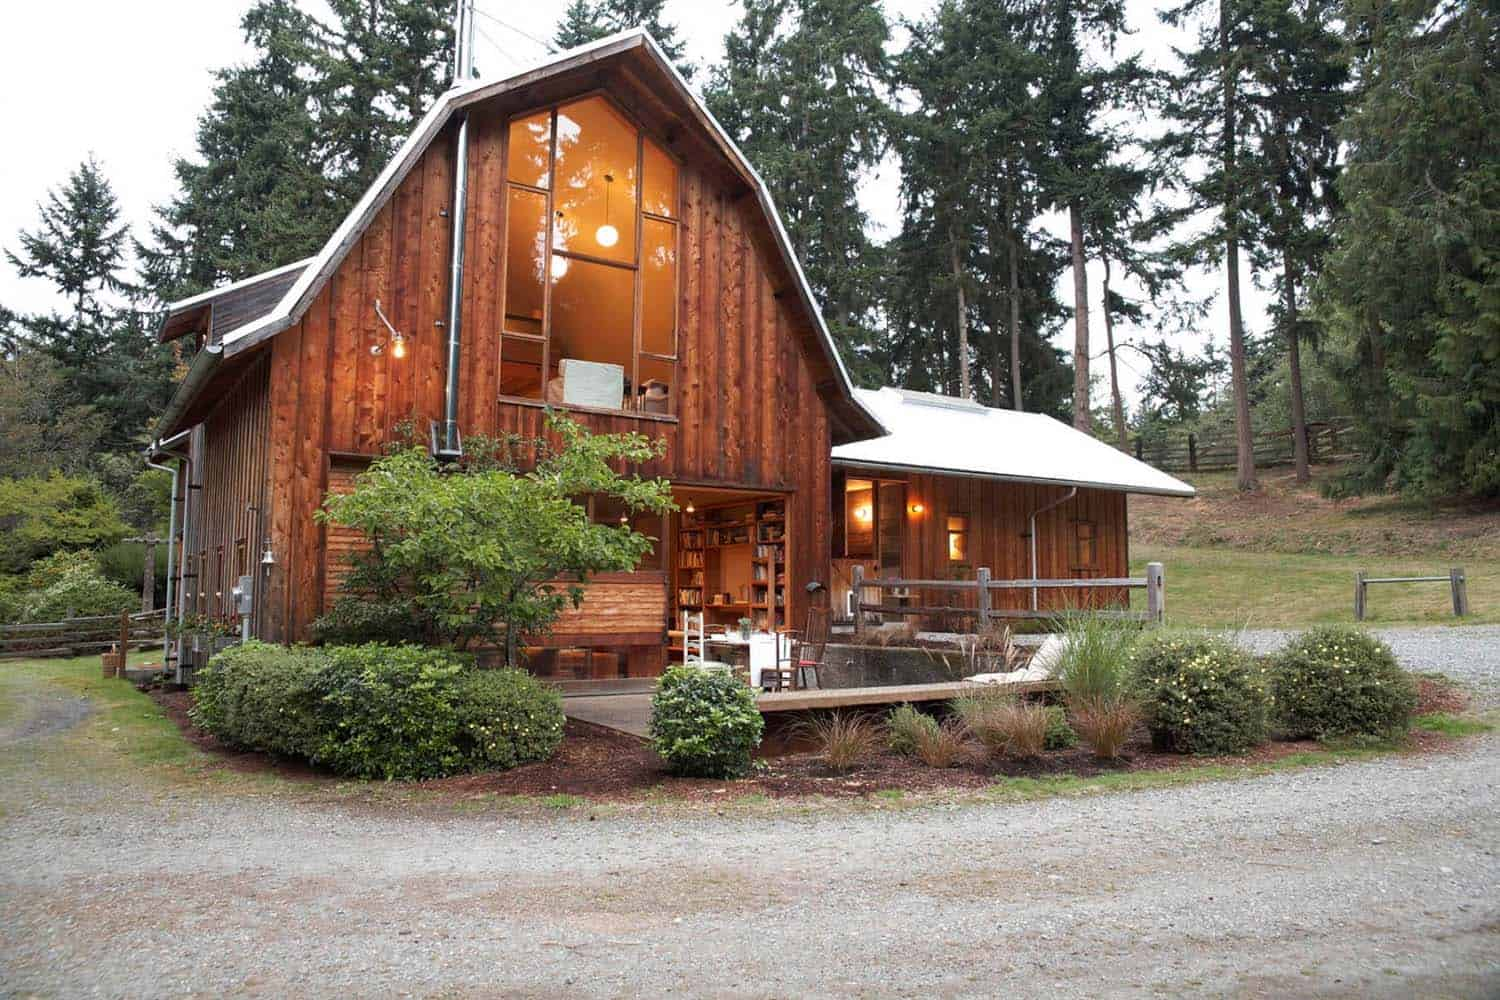 Old Barn On Whidbey Island Converted Into Stunning Home